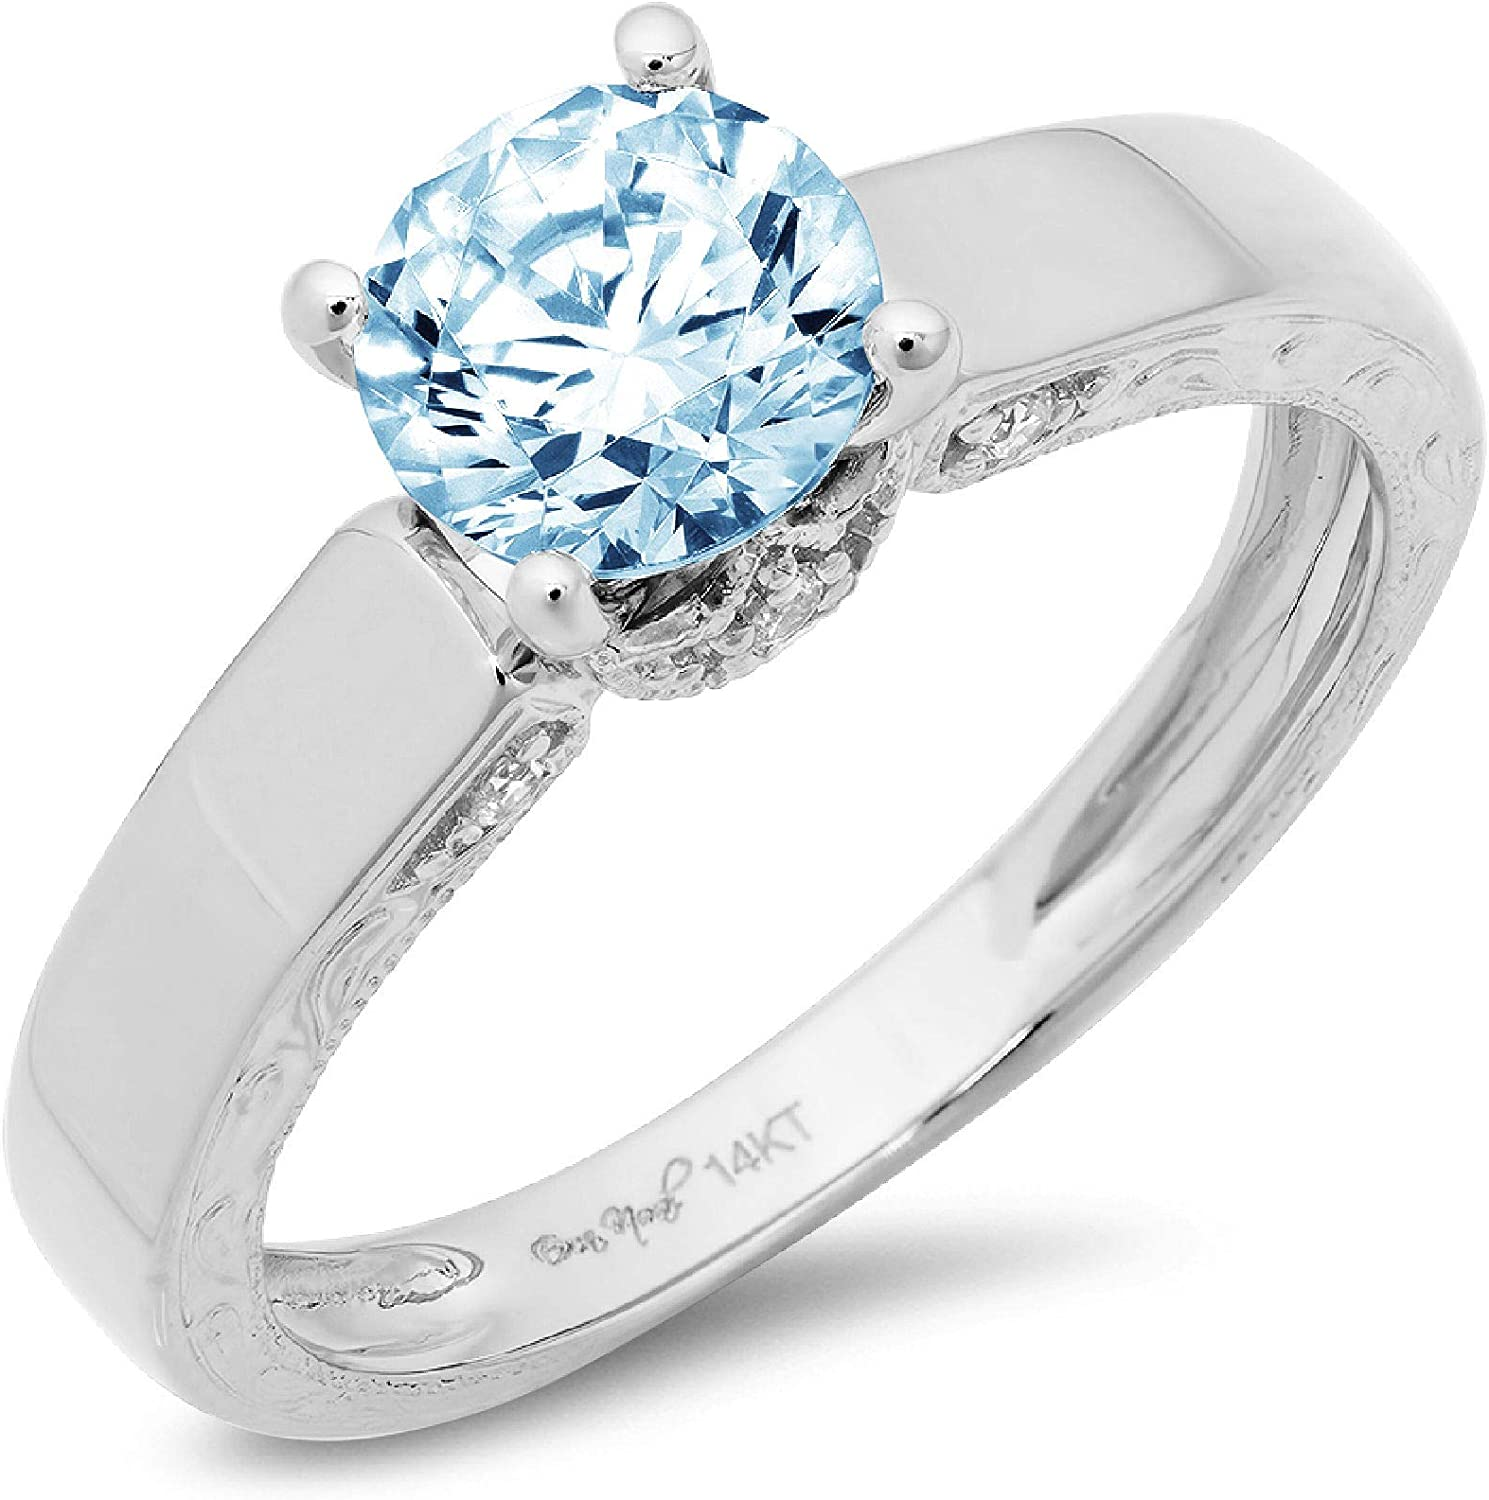 1.70ct Brilliant Round Cut Solitaire Genuine Flawless Blue Simulated Diamond Gemstone Engagement Promise Anniversary Bridal Wedding Accent Ring Solid 18K White Gold